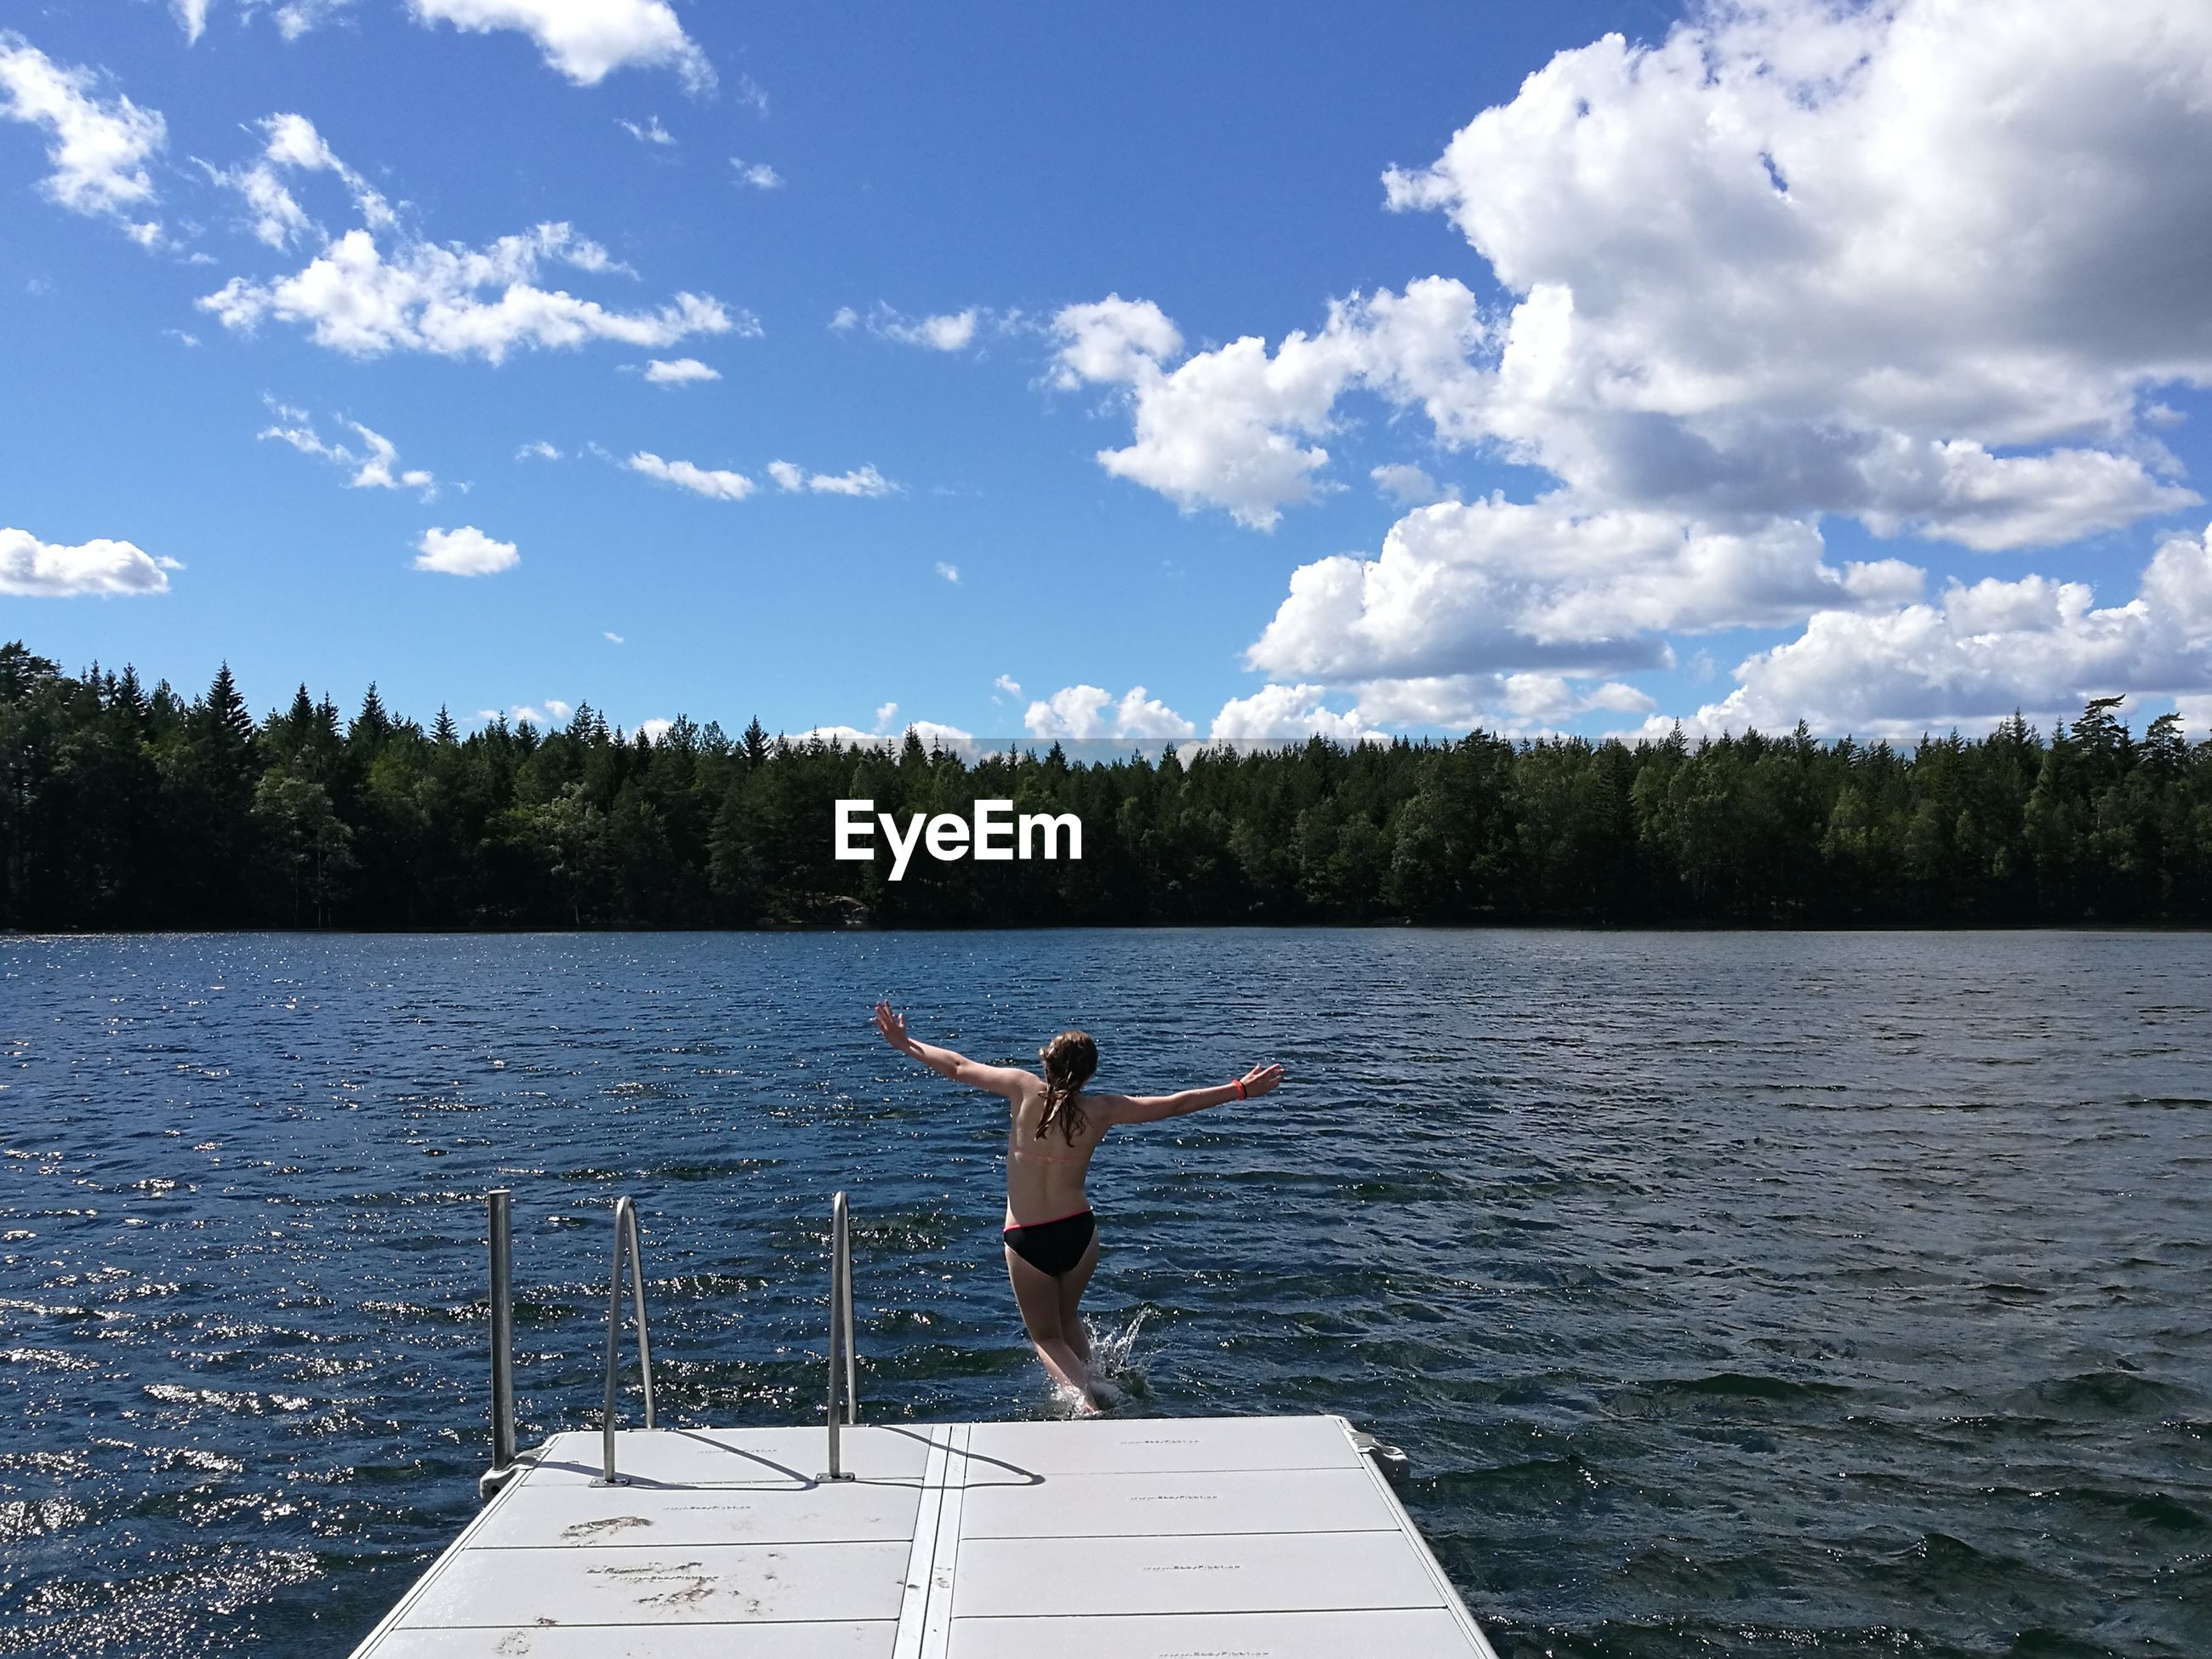 Shirtless girl diving into lake against blue sky